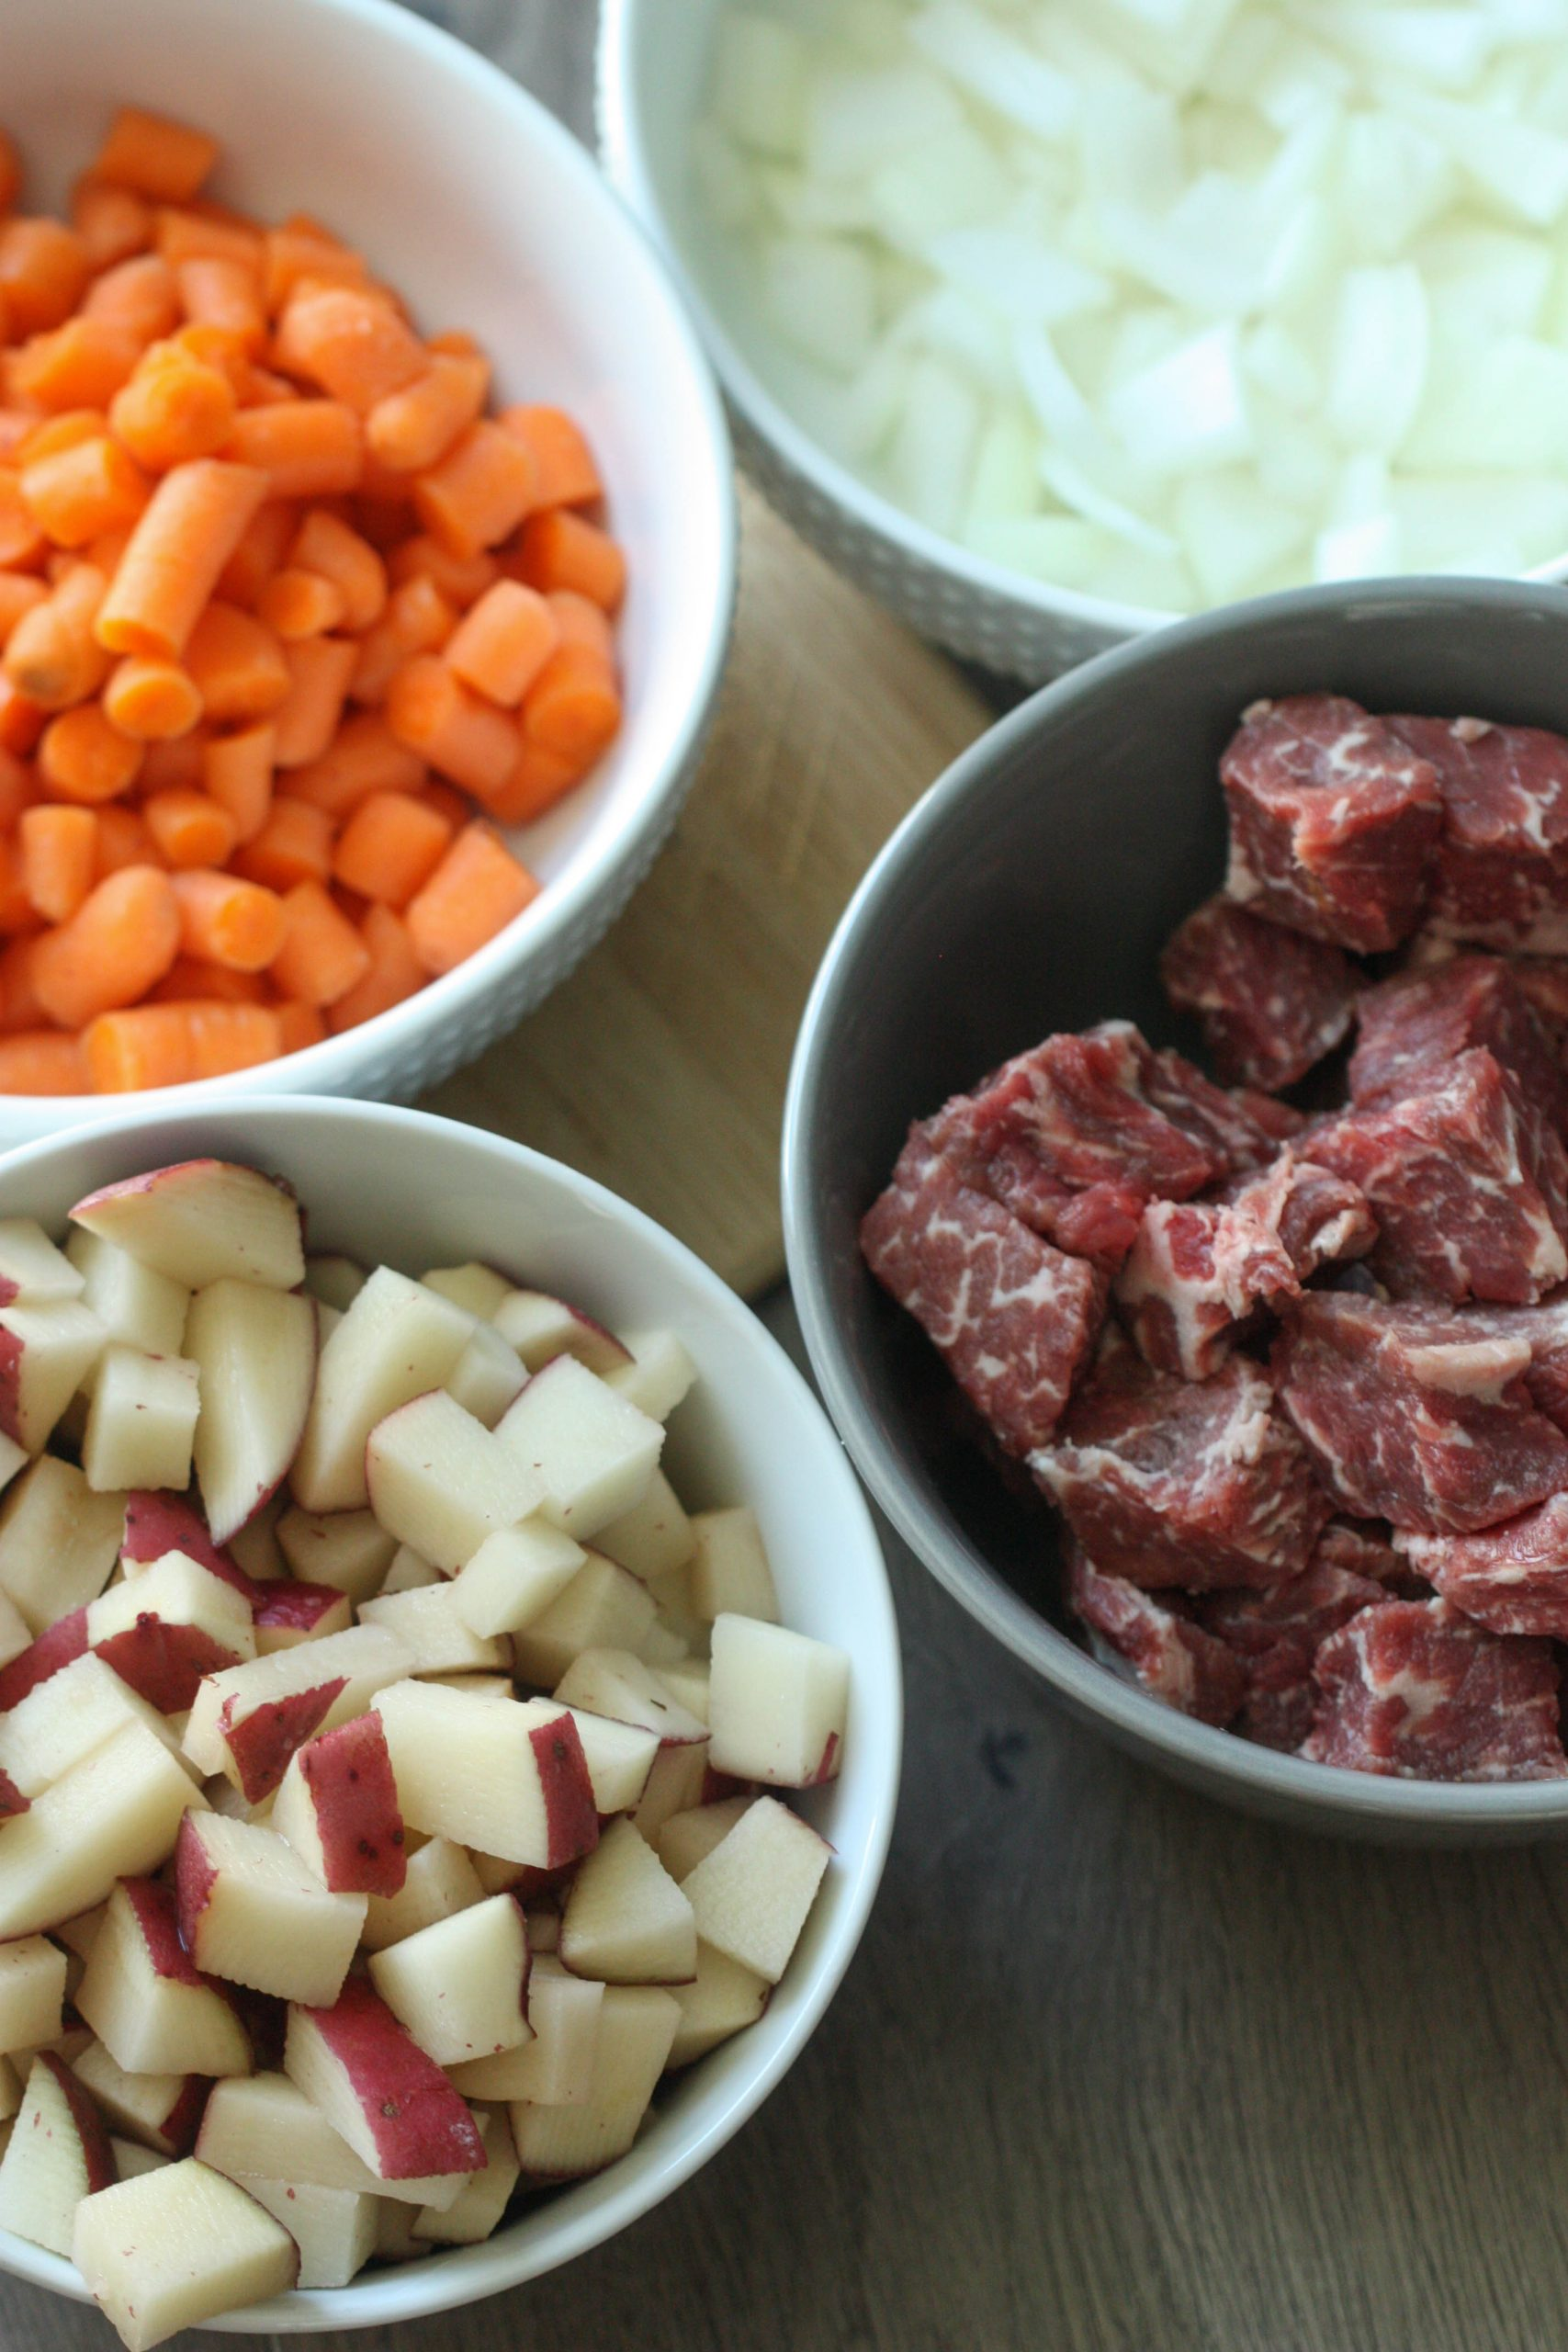 diced meat, carrots, onions and potatoes in bowls